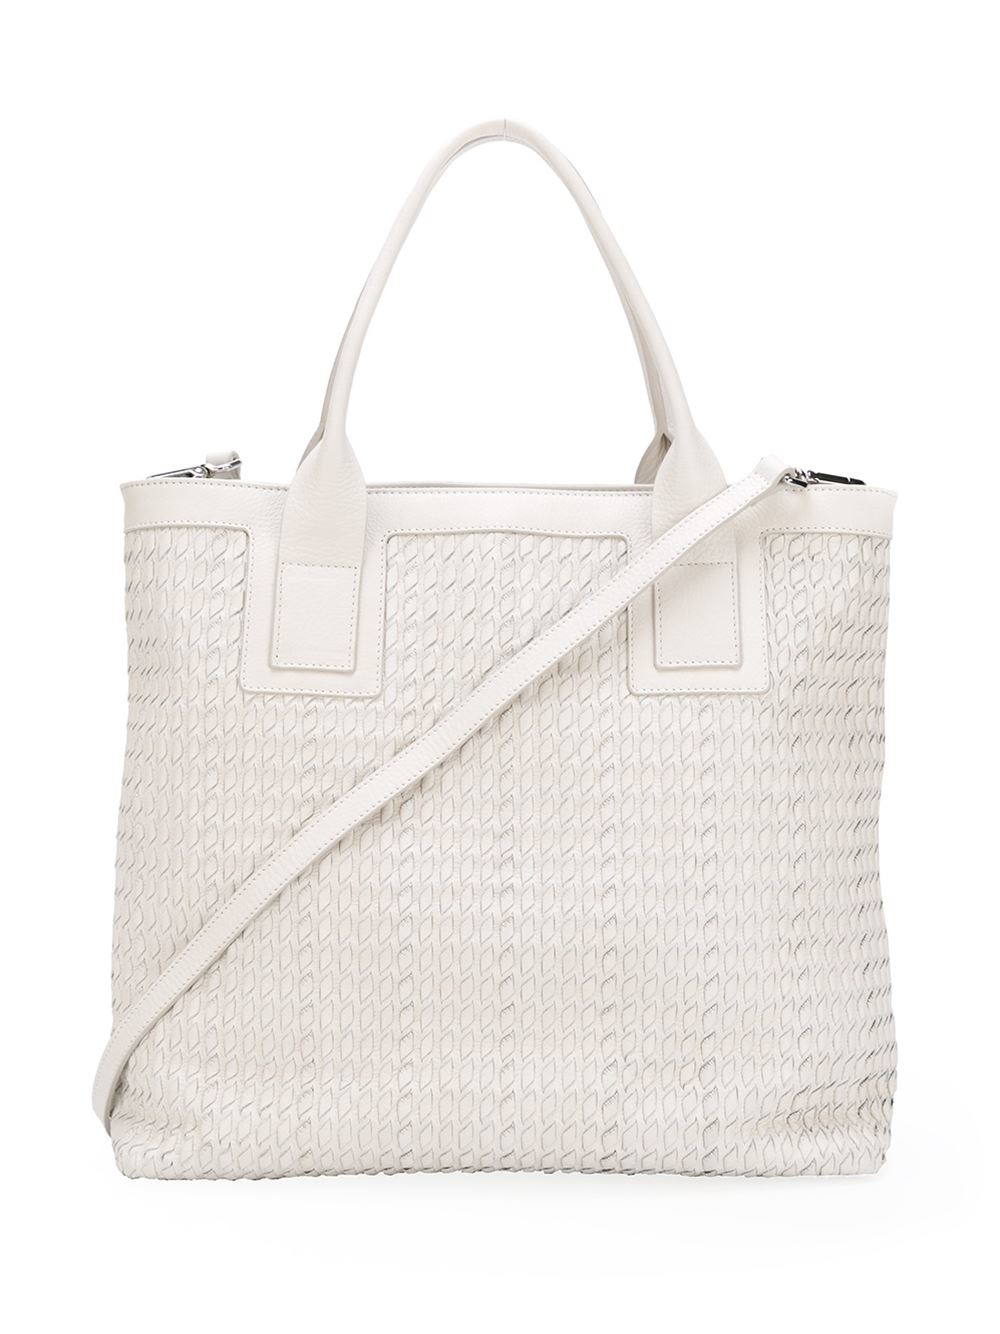 Fabiana Filippi Leather Large Textured Tote in Grey (Grey)